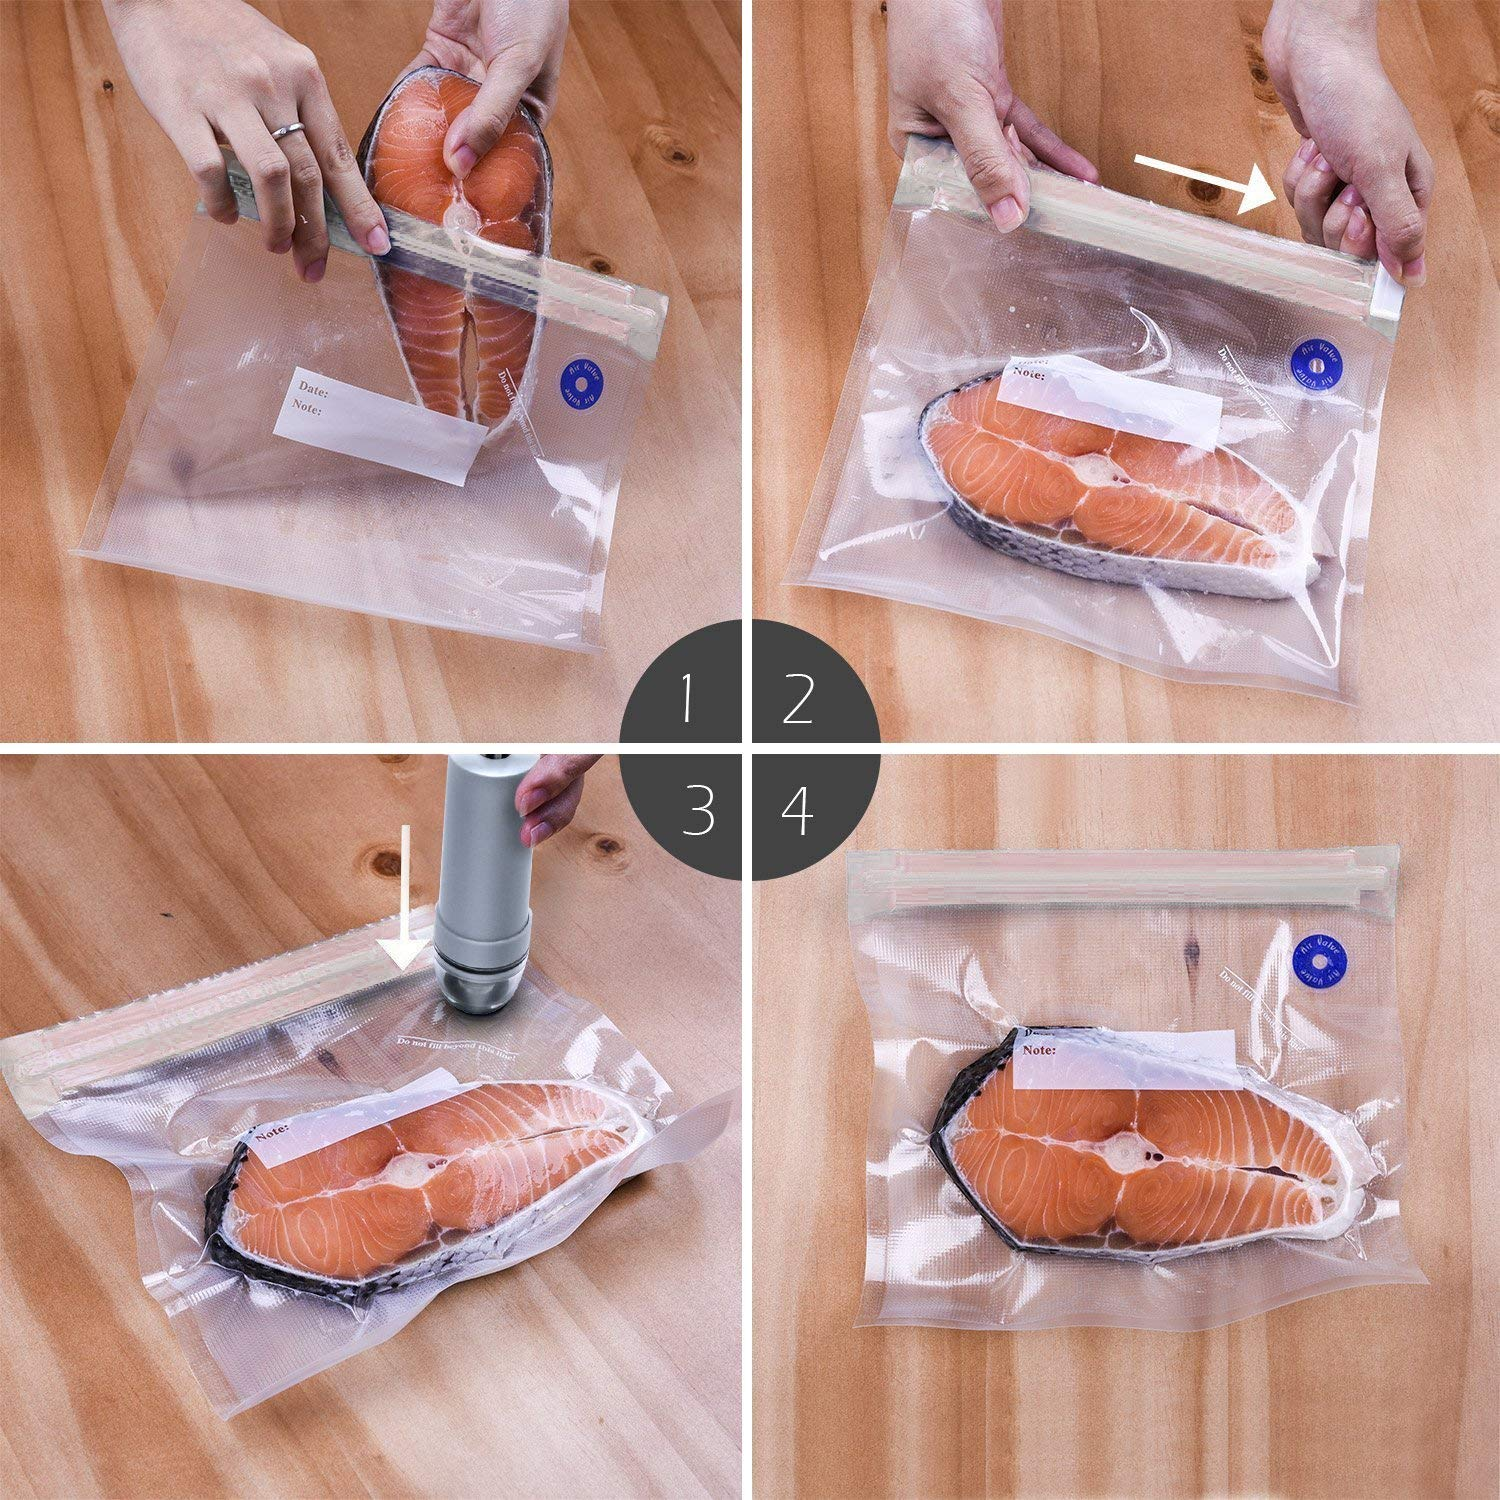 Image 2 - Manual Vacuum Sealer Bags Hand Pump Handheld For Food Storage With Pump Reusable Food Packages Kitchen Organizer Vacuum pump-in Saran Wrap & Plastic Bags from Home & Garden